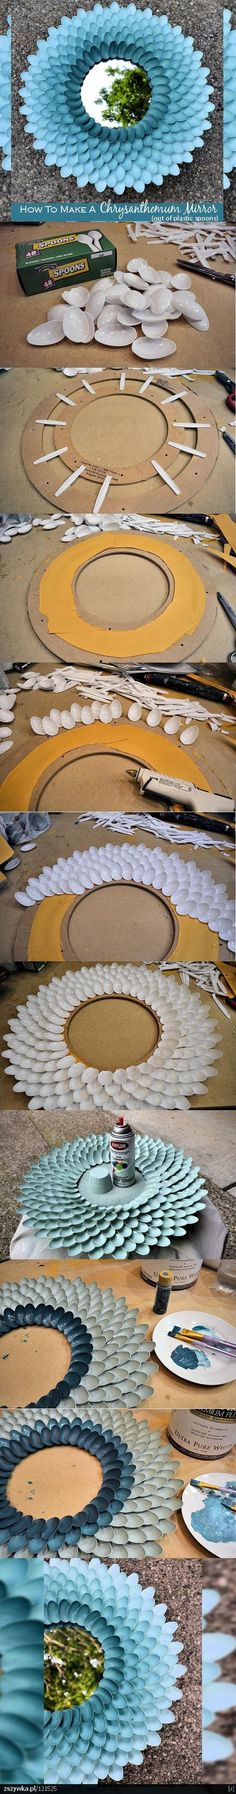 DIY plastic spoon mirror...for those on a budget, or for Children to decorate their rooms with things they make themselves. Personally...I think it's cool and it looks like flower petals or seashells. Love it.